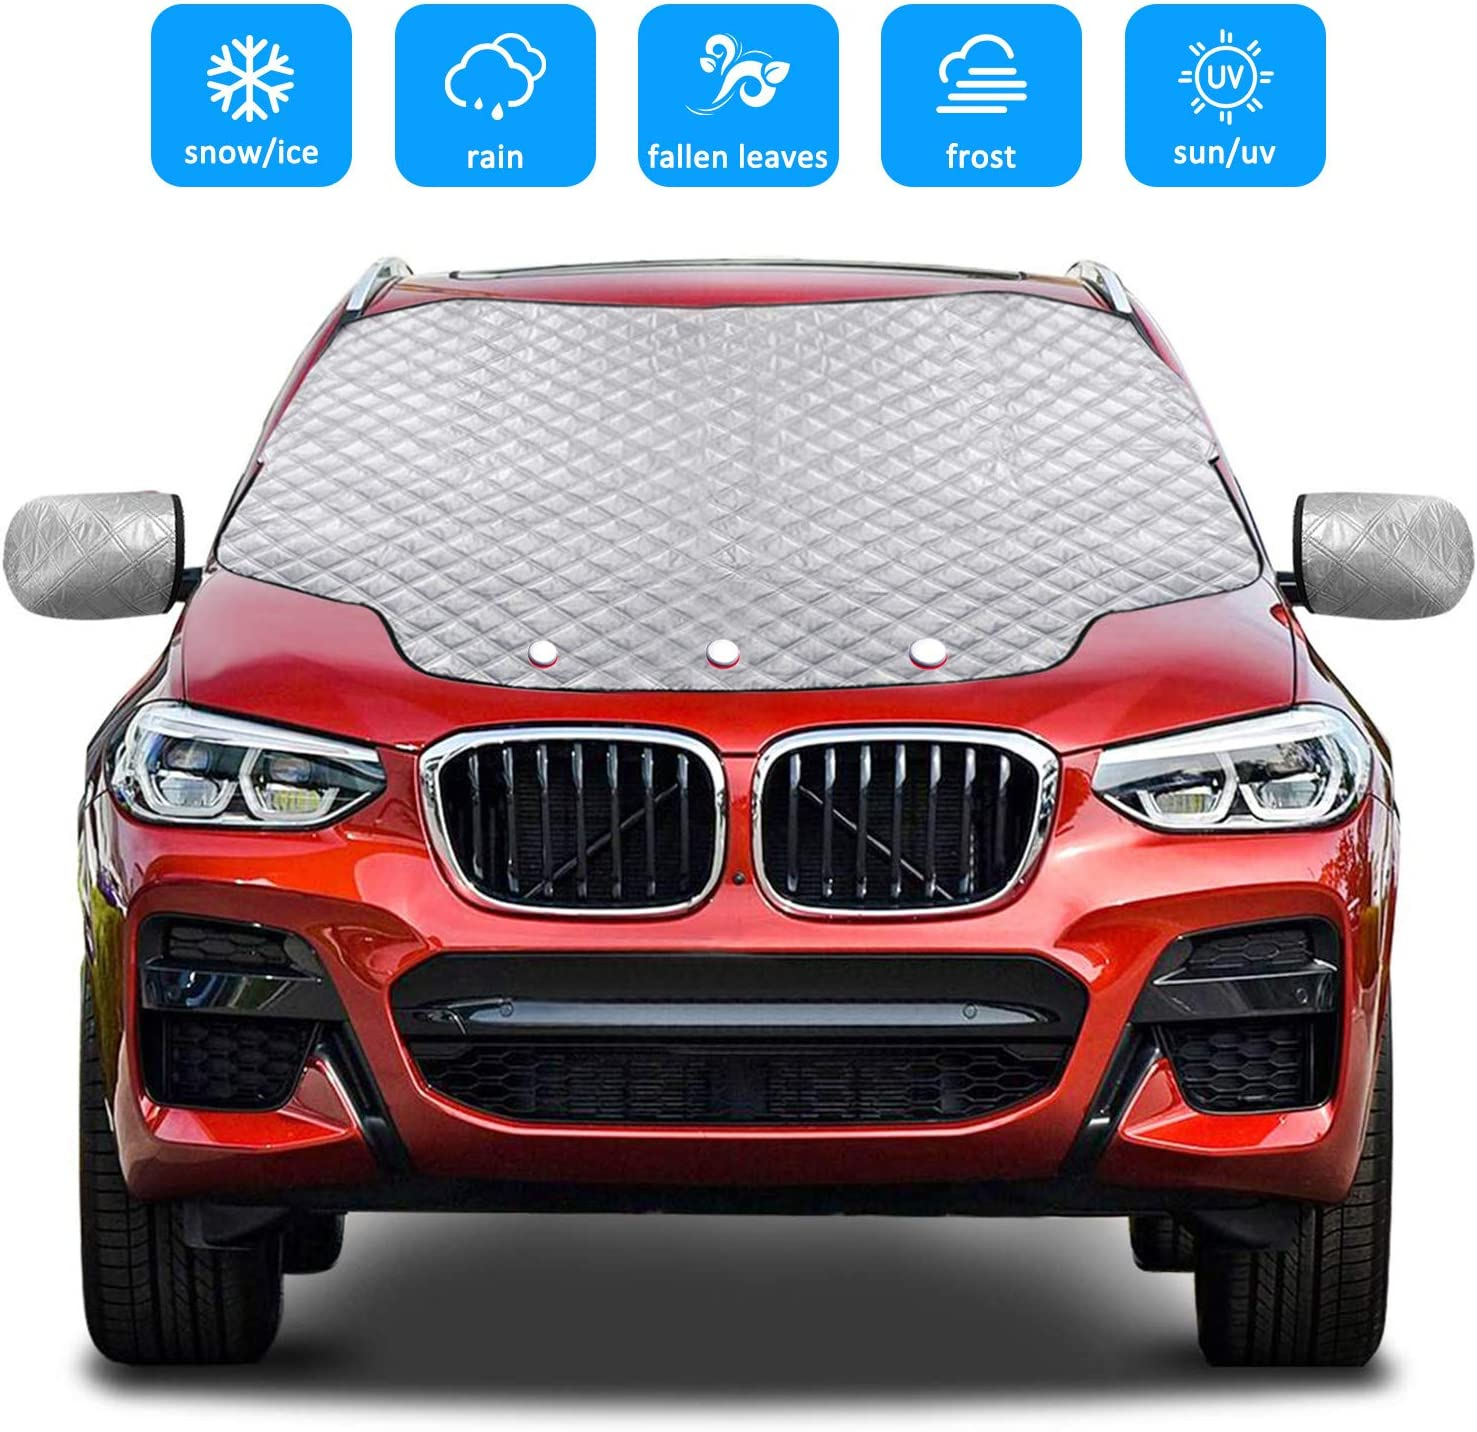 MAGNETIC WINDSCREEN COVER ICE SNOW FROST SHIELD CAR WINTER CHRISTMAS GIFT COLD